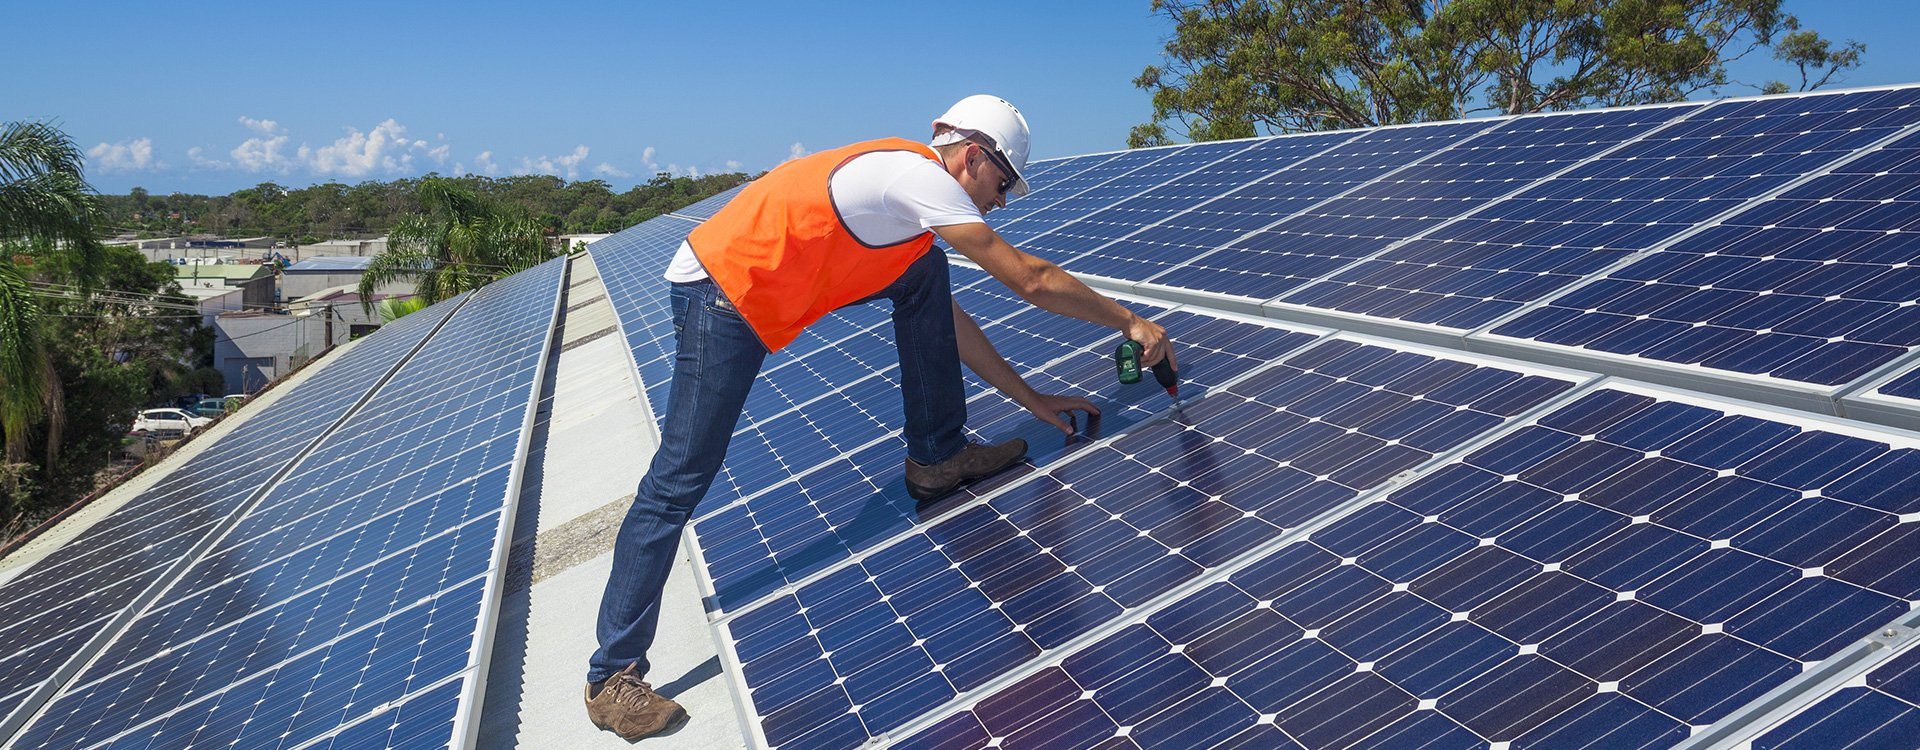 Installation of solar panels by expert